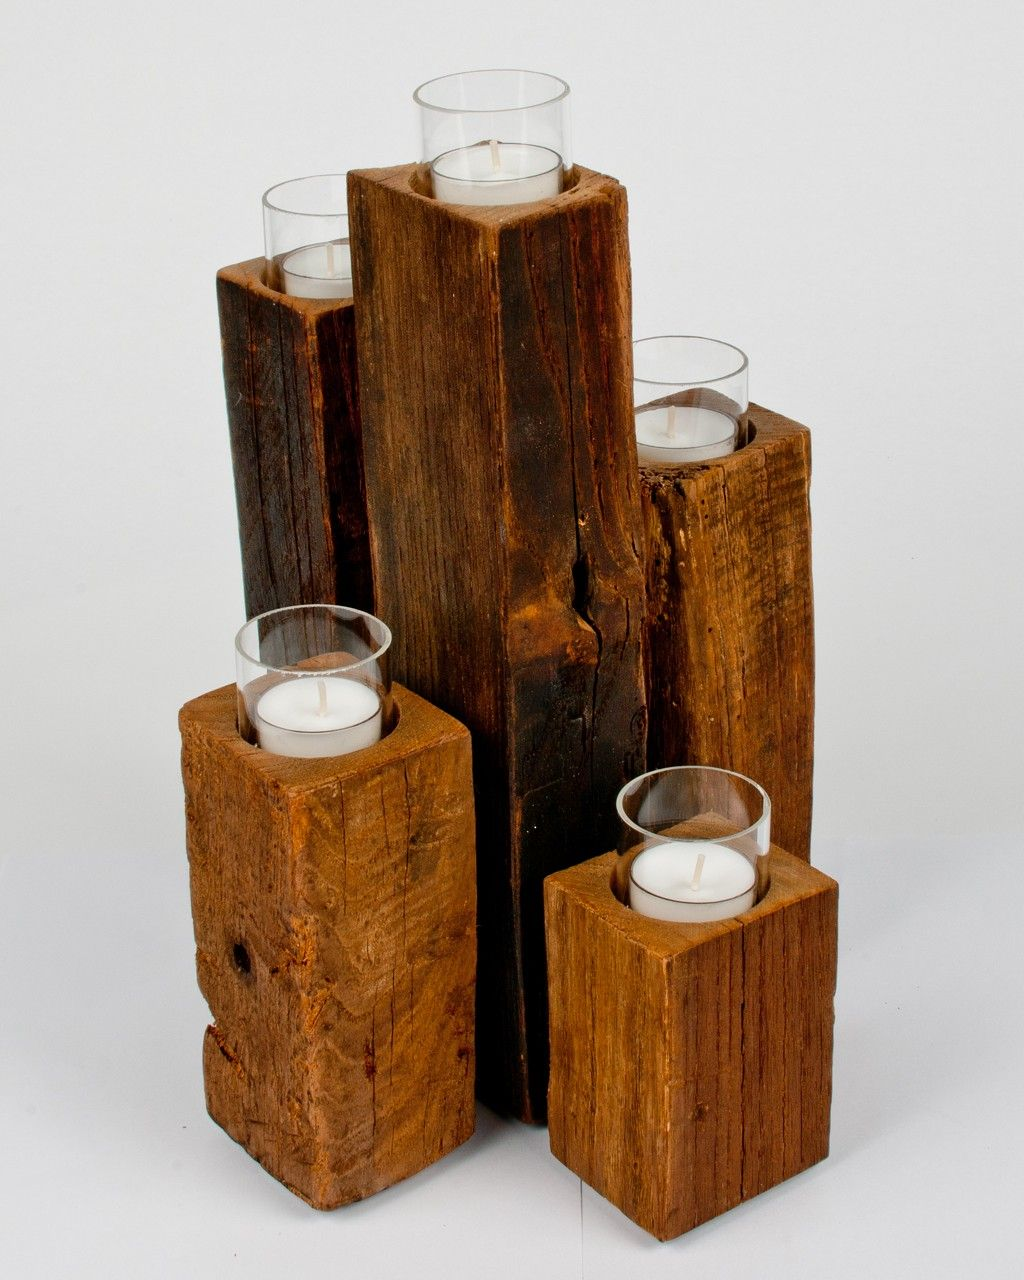 Unysn Elm Staggered Pillar 4x4 Wood Crafts Wood Candle Holders Diy Diy Wood Candles